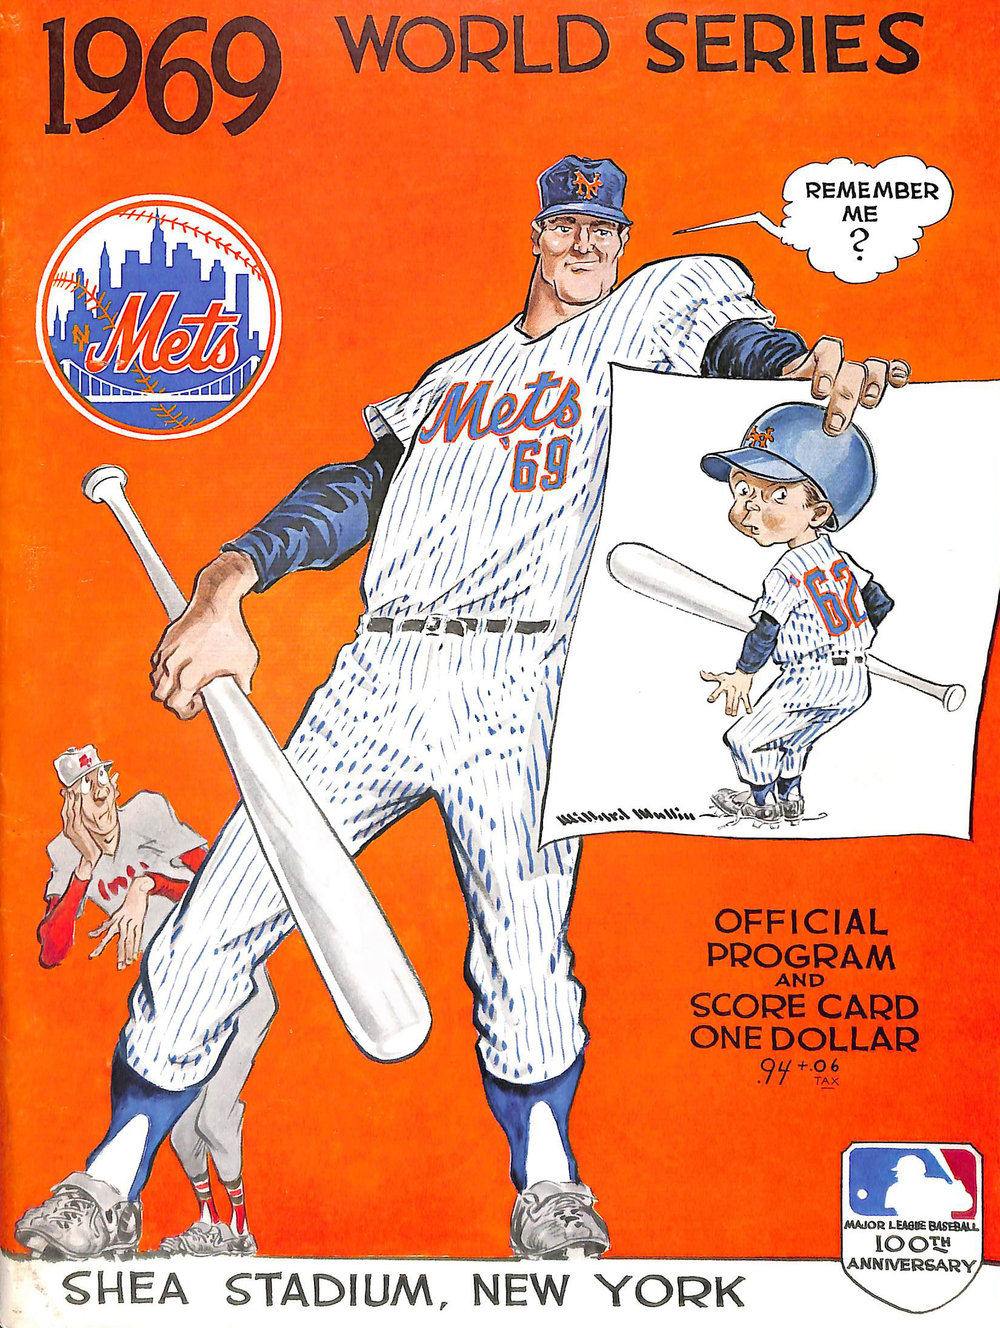 1969-world-series-program.jpg